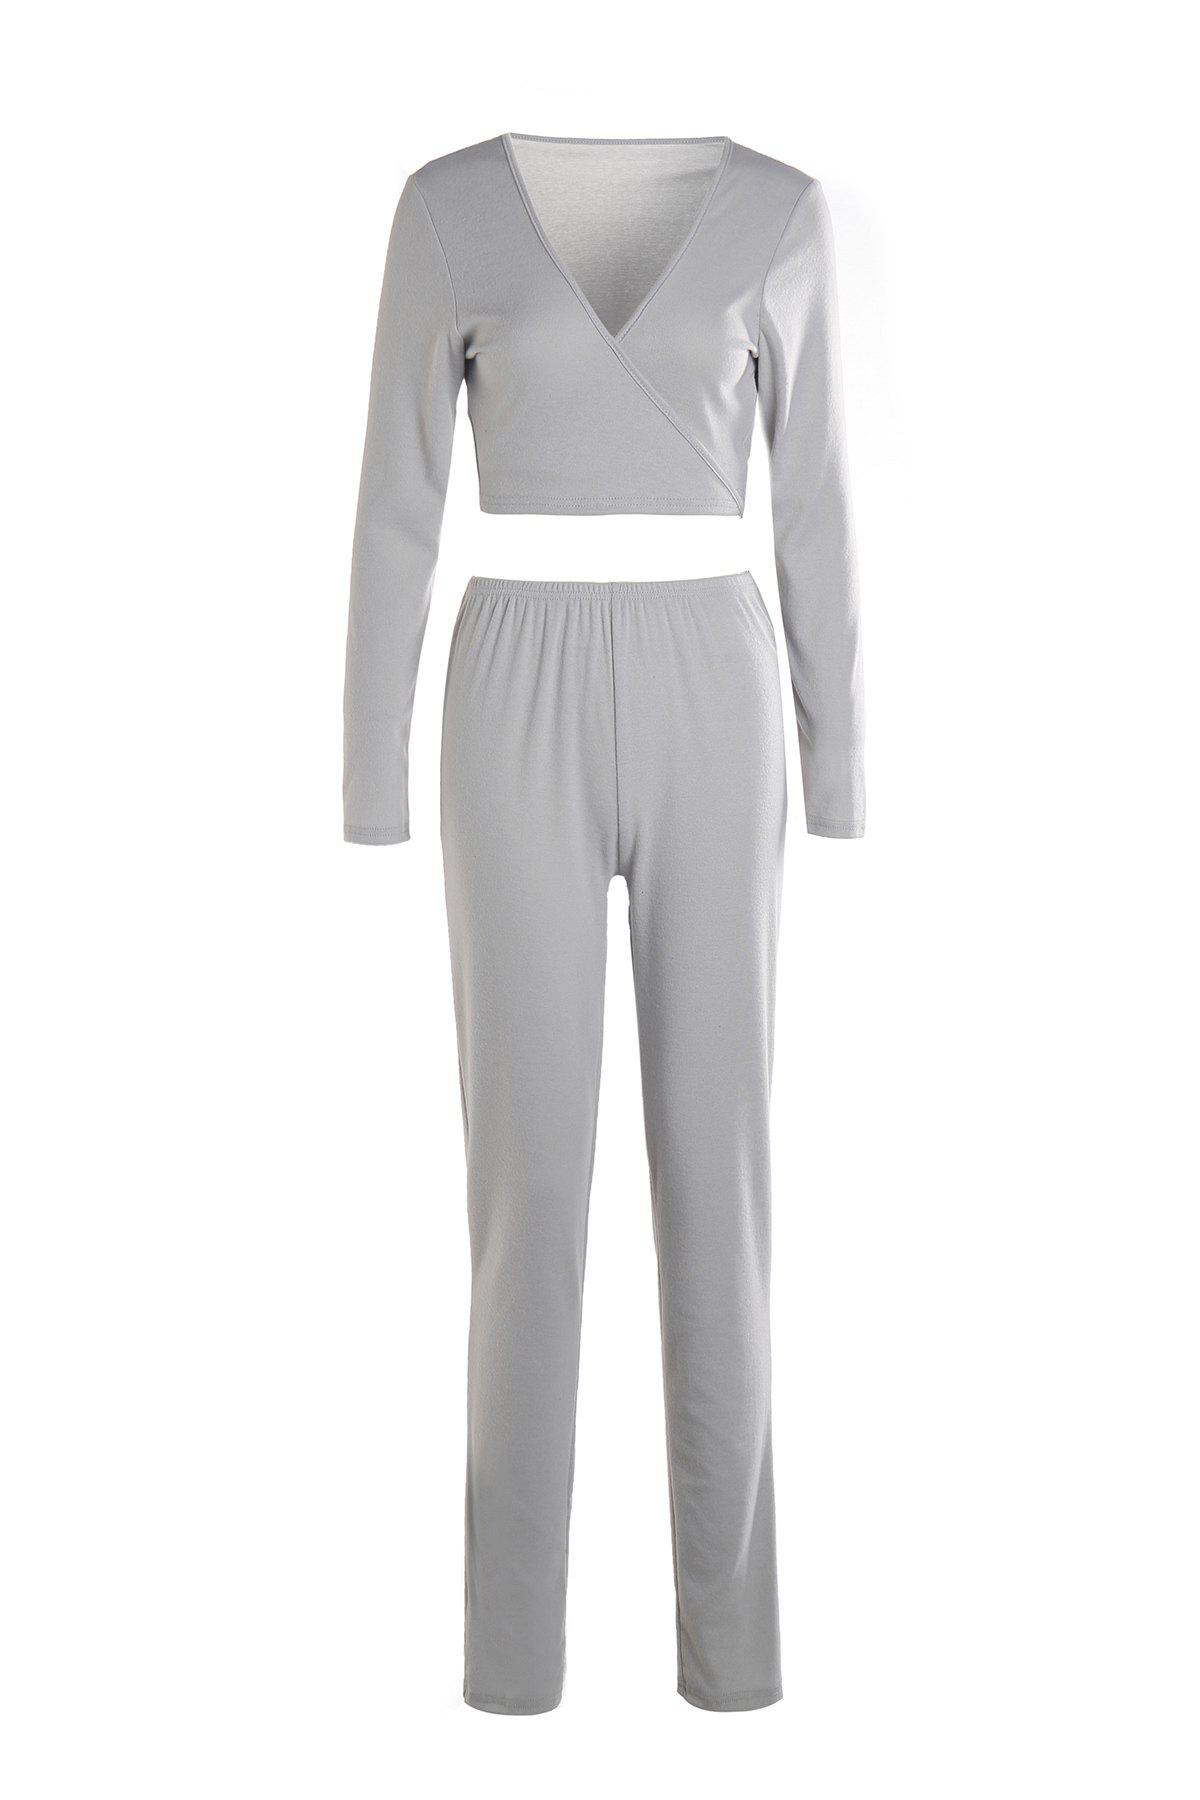 Trendy Solid Color Plunging Neck Crop Top and Bodycon Pants Twinset For WomenWomen<br><br><br>Size: XL<br>Color: LIGHT GRAY